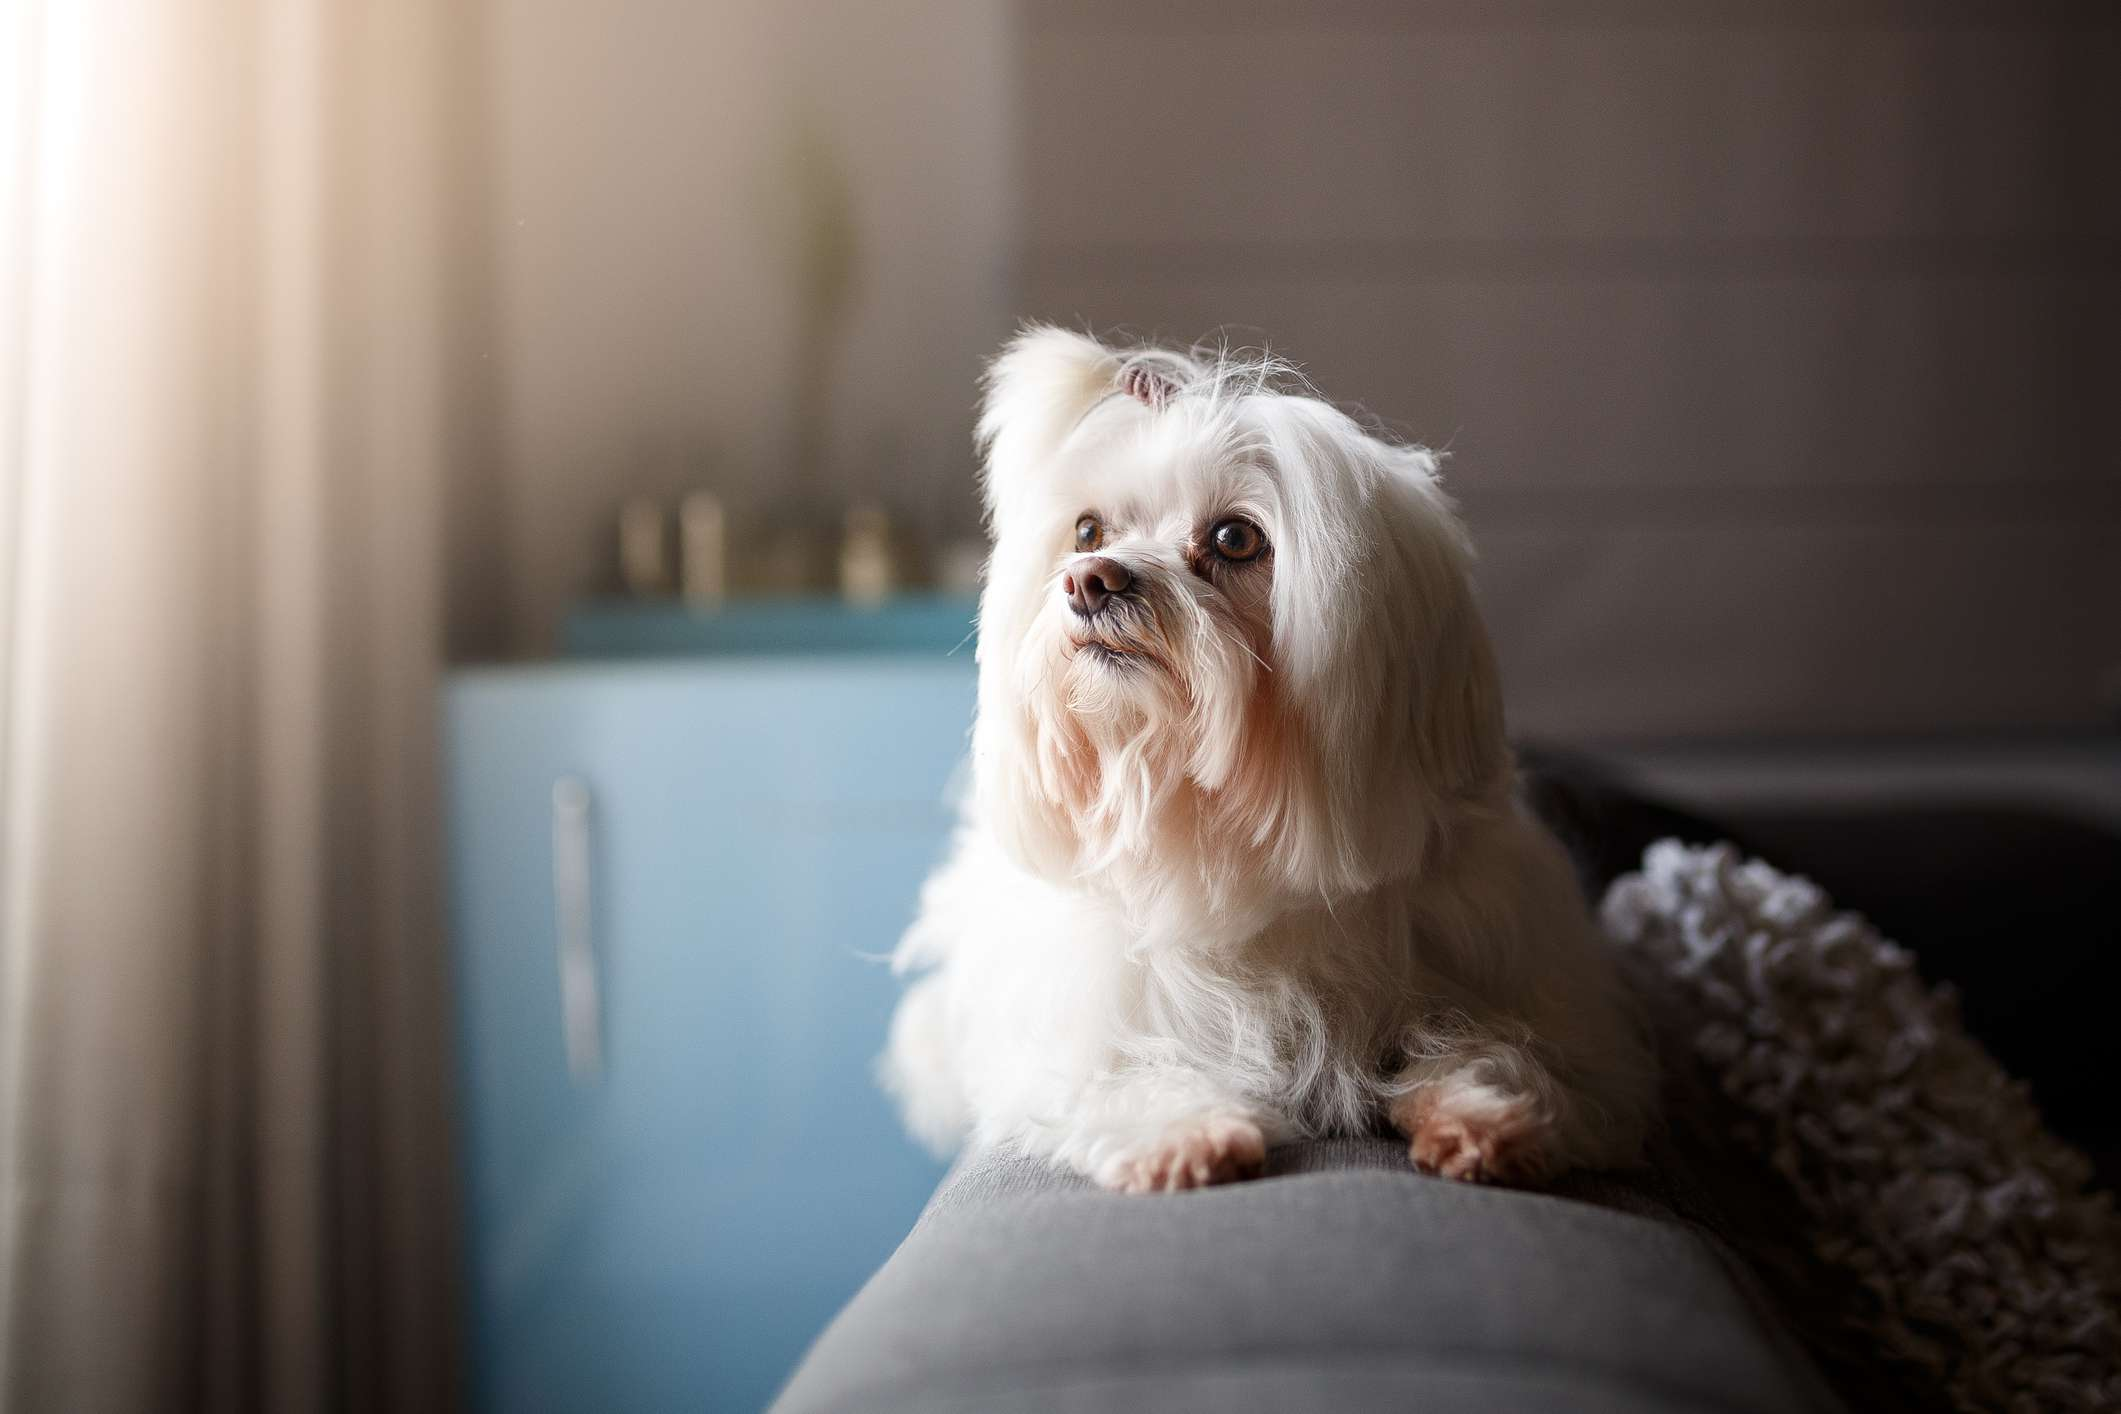 A smaller, white dog with long hair on its face.